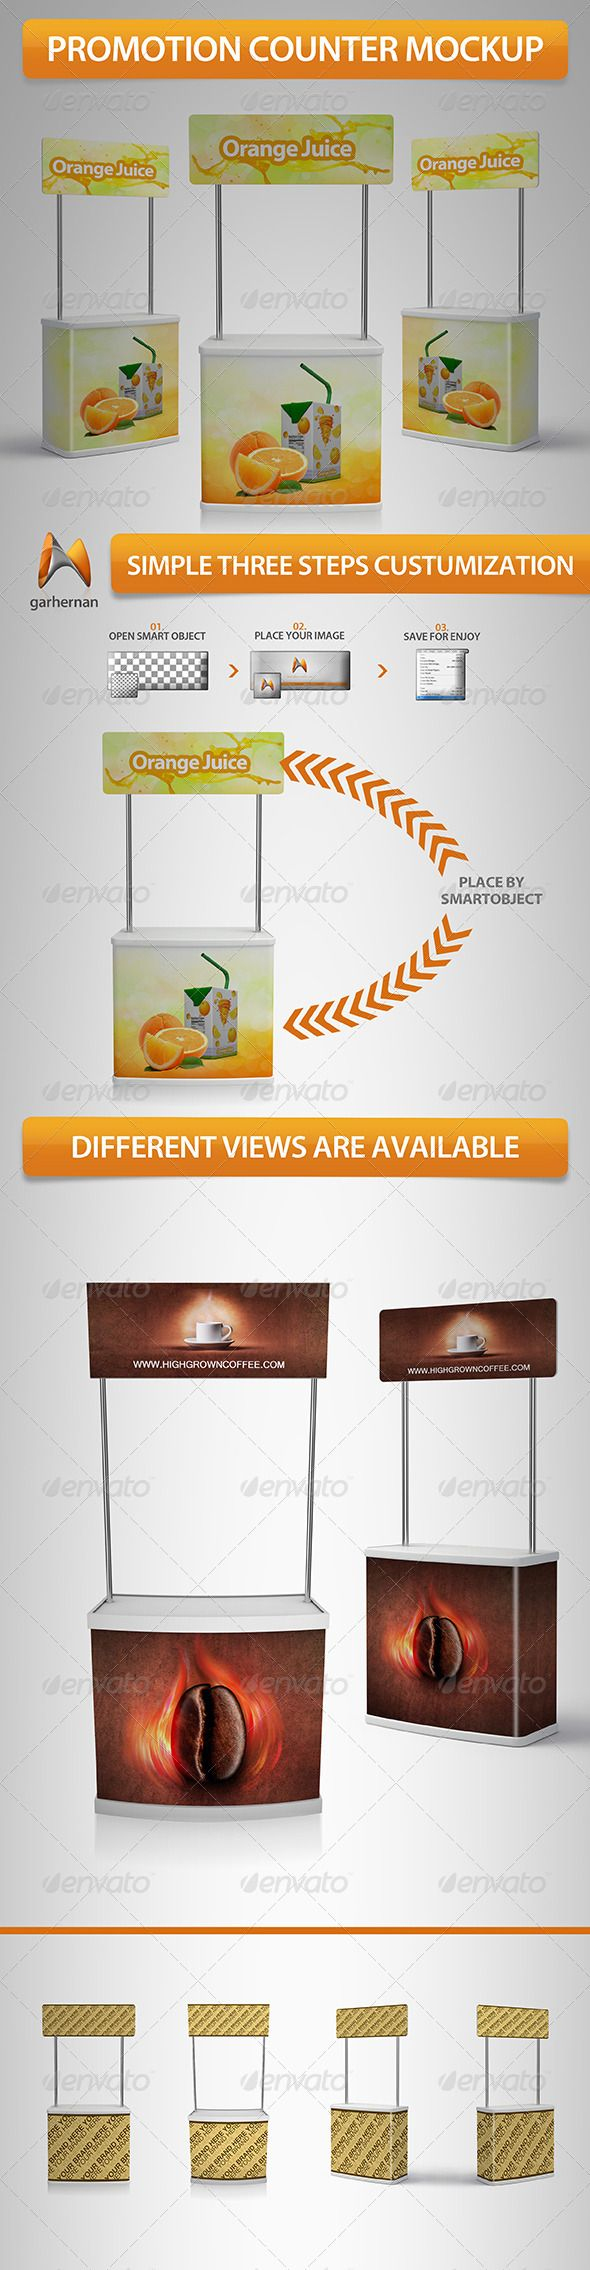 Promotion Stand Mockup #GraphicRiver This mock-up helps you to show your Suermarket Promotion Counter design, realistic and professional, 4 diferent views and you can edit on simple clicks. Features: - Fully editable - Organized and layered photoshop - Edit sides using Smart Objects - Mockup is in RGB Color - High Resolution 300dpi - Very crear documentation Others Mockup Created: 20October12 GraphicsFilesIncluded: PhotoshopPSD HighResolution: Yes Layered: Yes MinimumAdobeCSVersion: CS4…